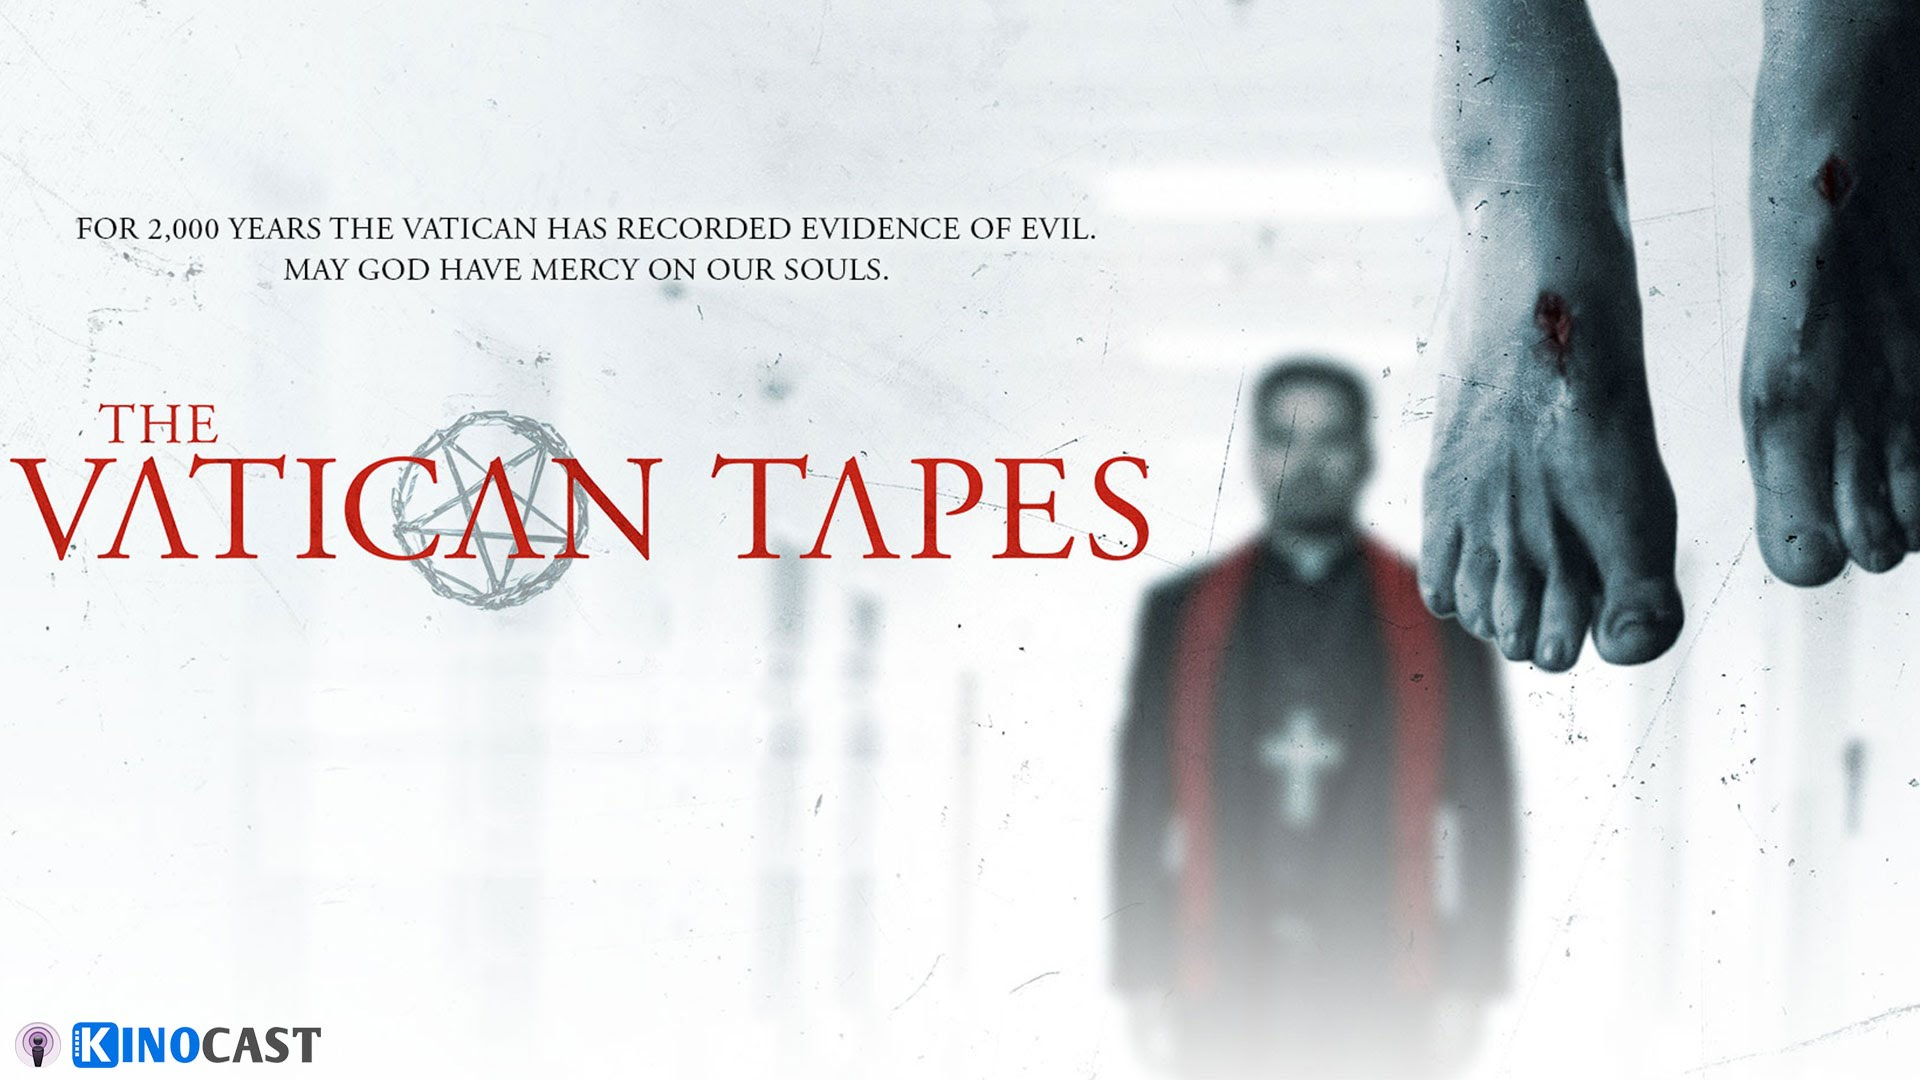 1920x1080 > The Vatican Tapes Wallpapers